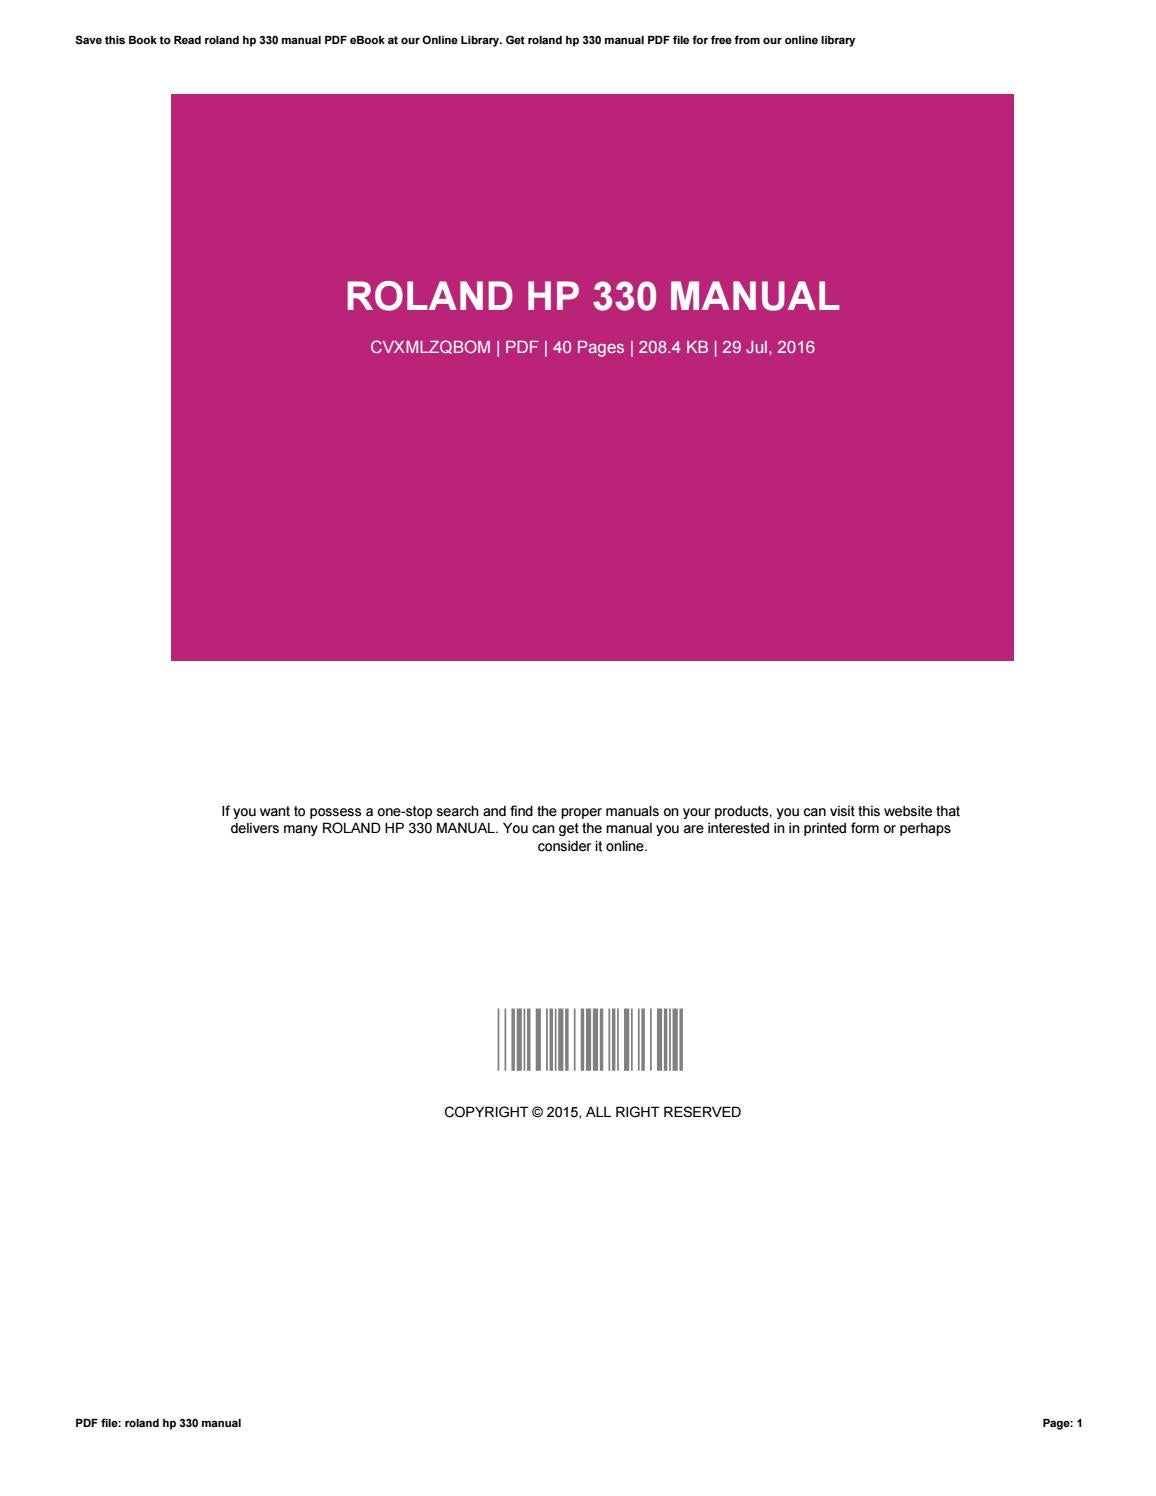 roland hp 330 service manual